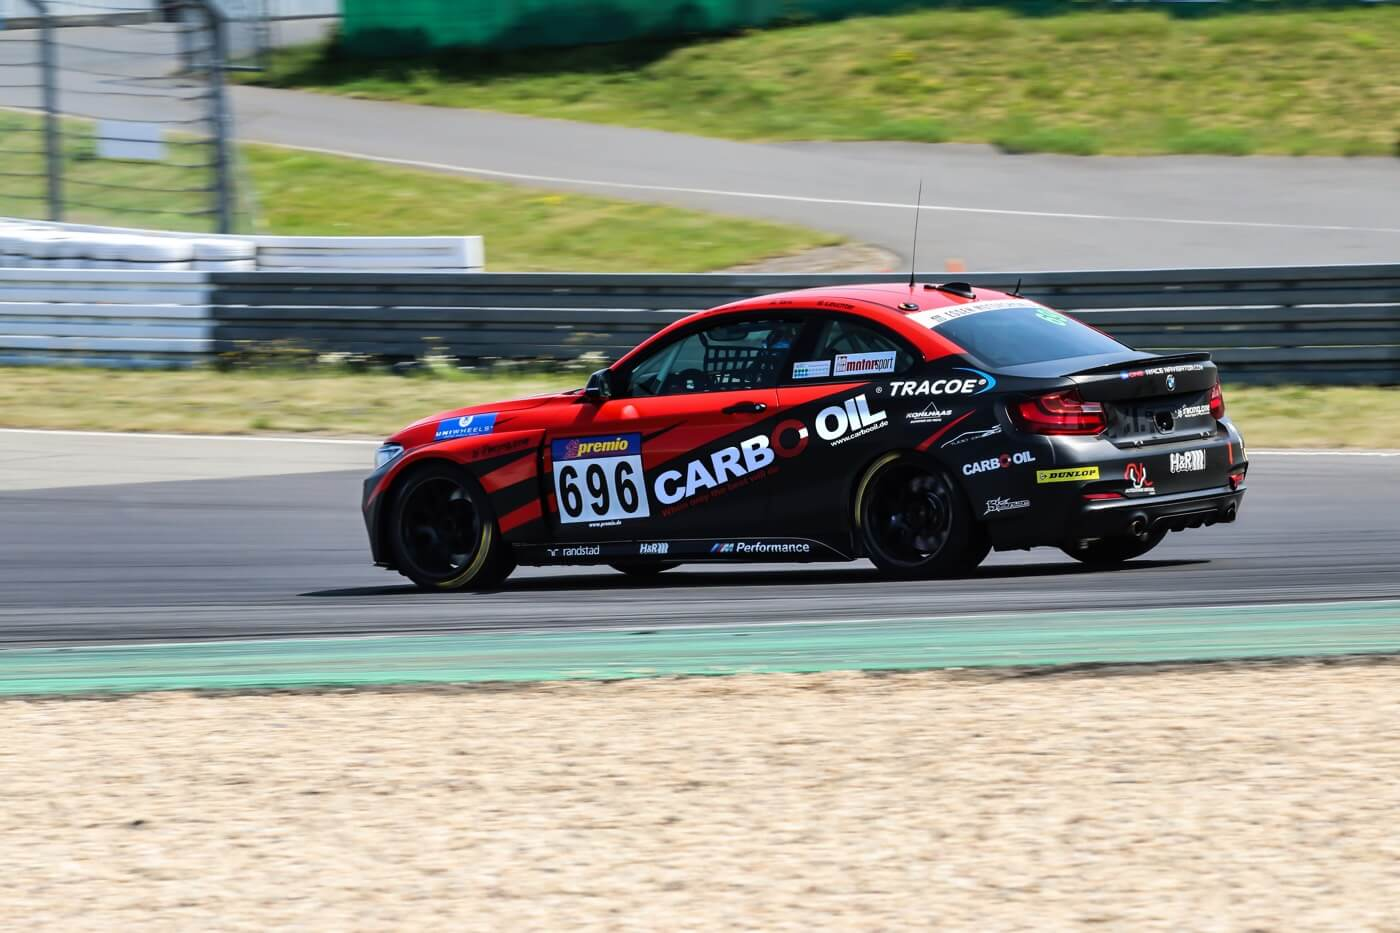 Carbo oil BMW VLN 2